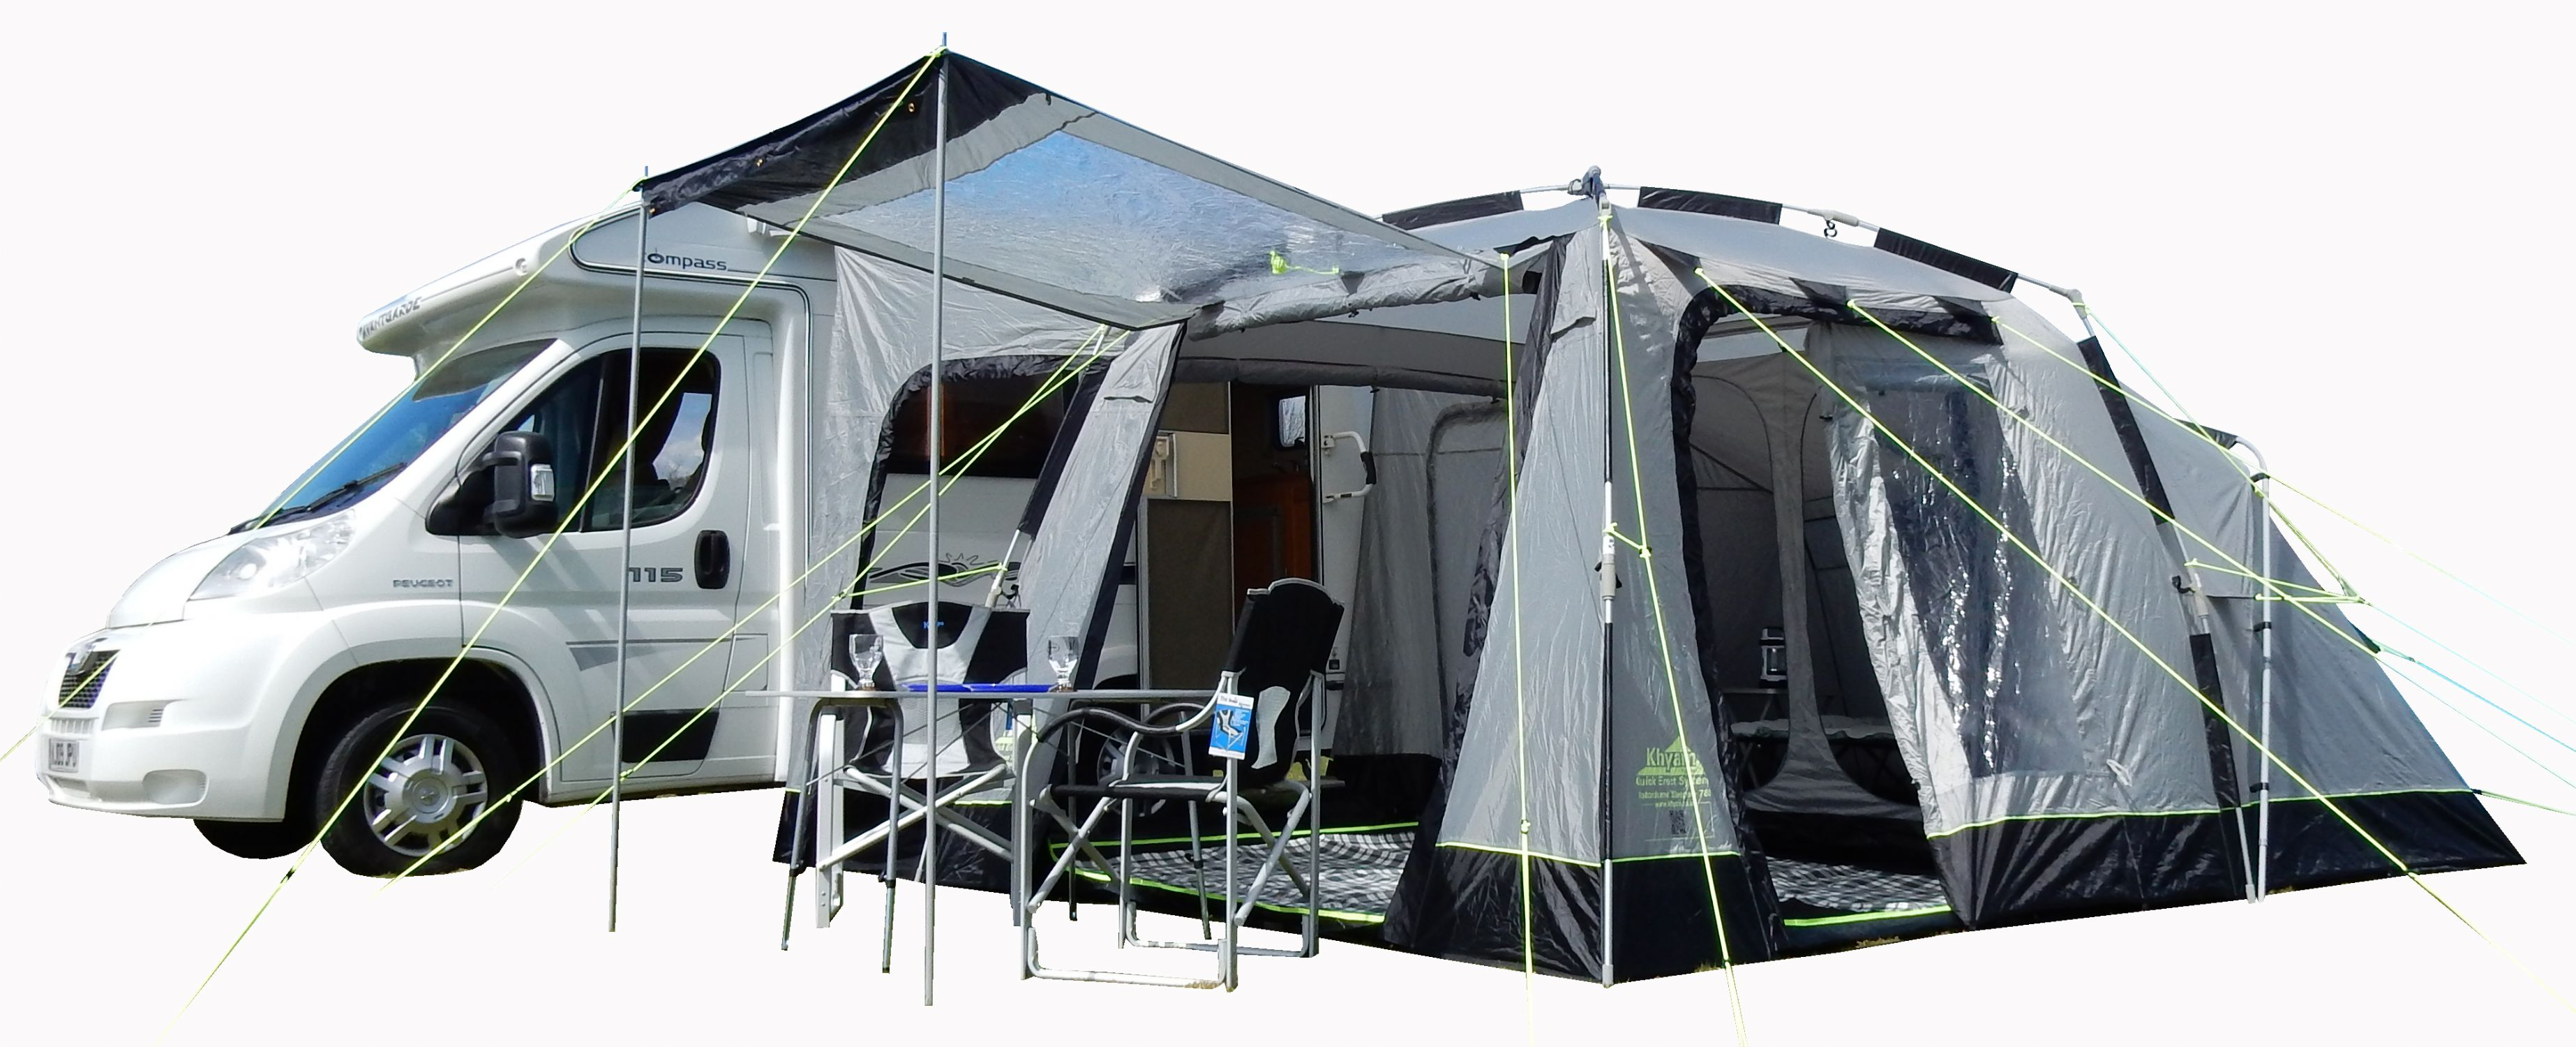 sleeping a can exntension for nl place in awning tent unico products create easily an unicovoortenten extension with awnings inner you the and uitbouw